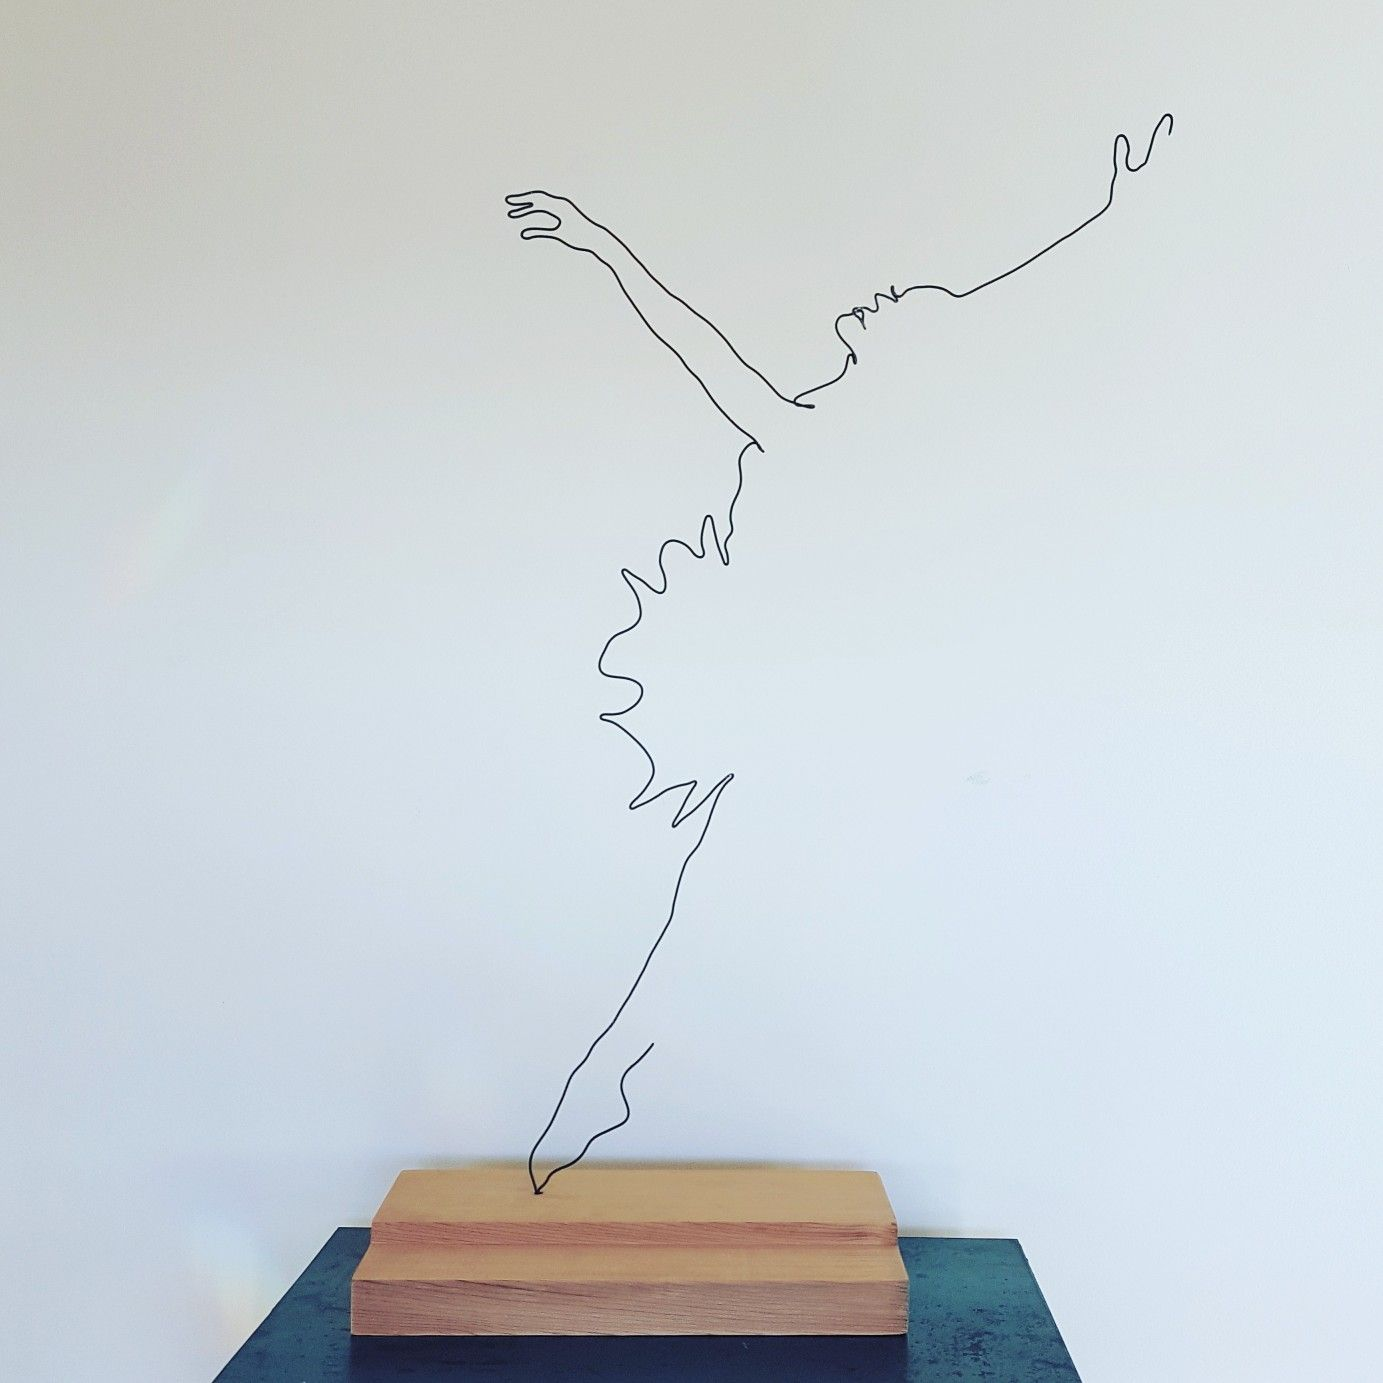 Balance Wire Sculpture By Artist Felicity Cavanough A Drawing Of A Ballet Dancer Arabesque Ballet Dancer Leapin Wire Art Sculpture Wire Art Wire Sculpture